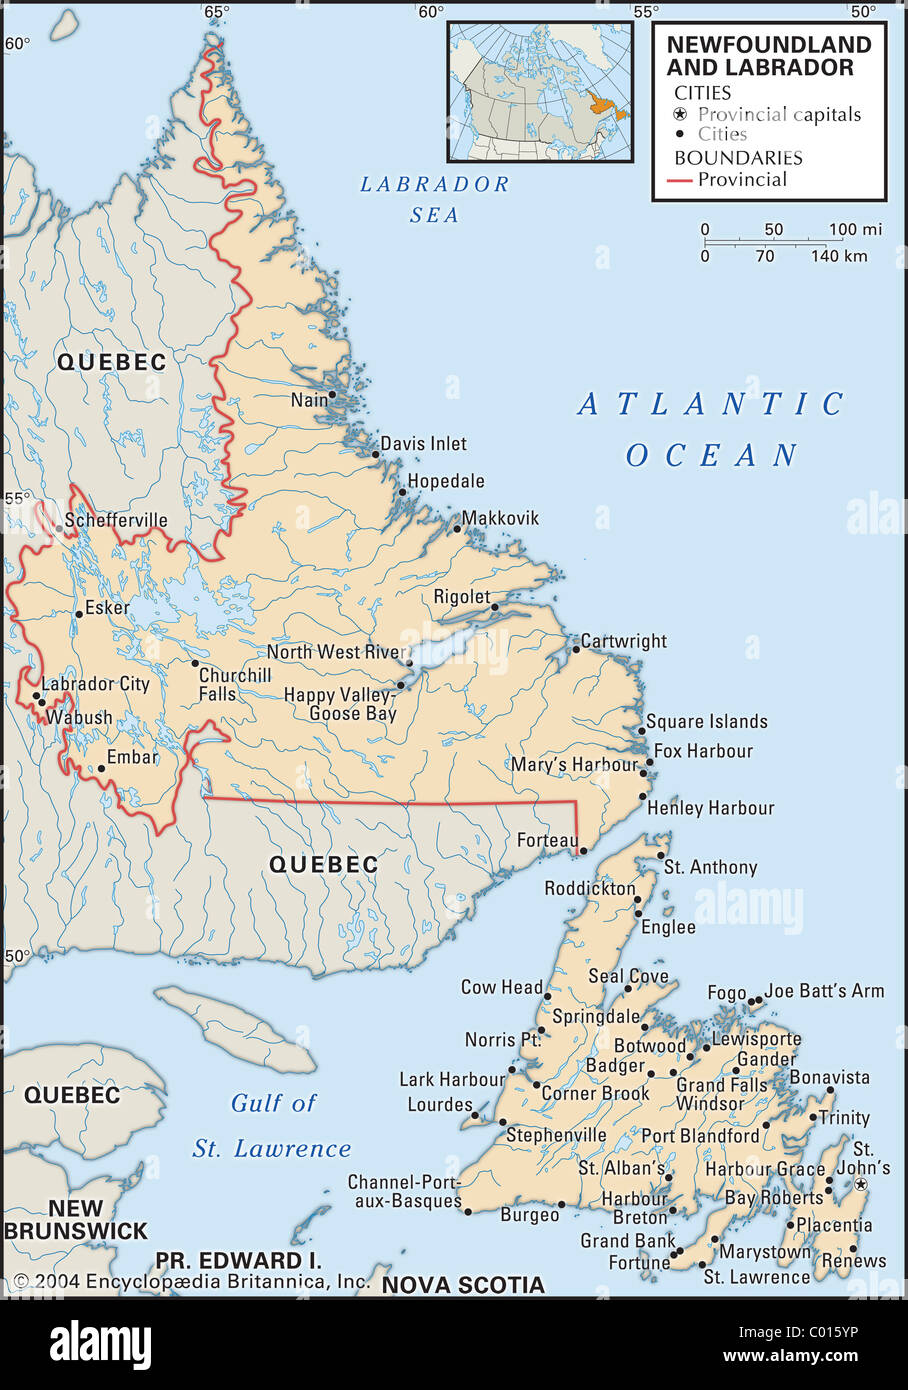 Newfoundland Canada Province Map Stock Photos Newfoundland Canada